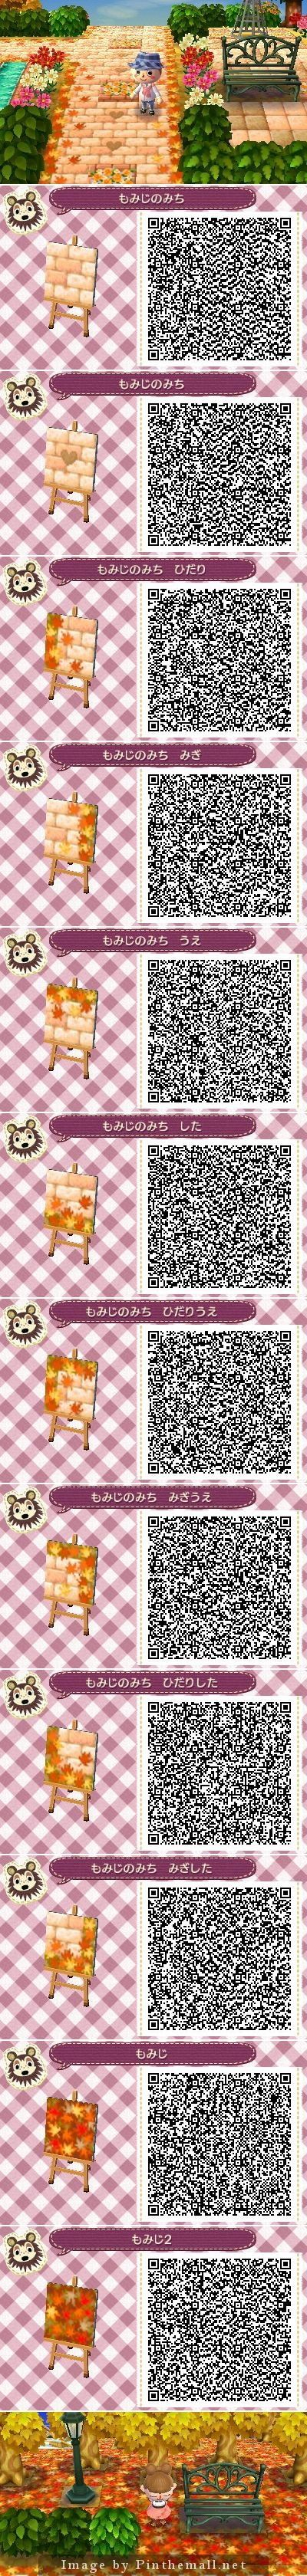 Best 25 acnl bodendesigns ideas on pinterest acnl pfade for Acnl boden qr